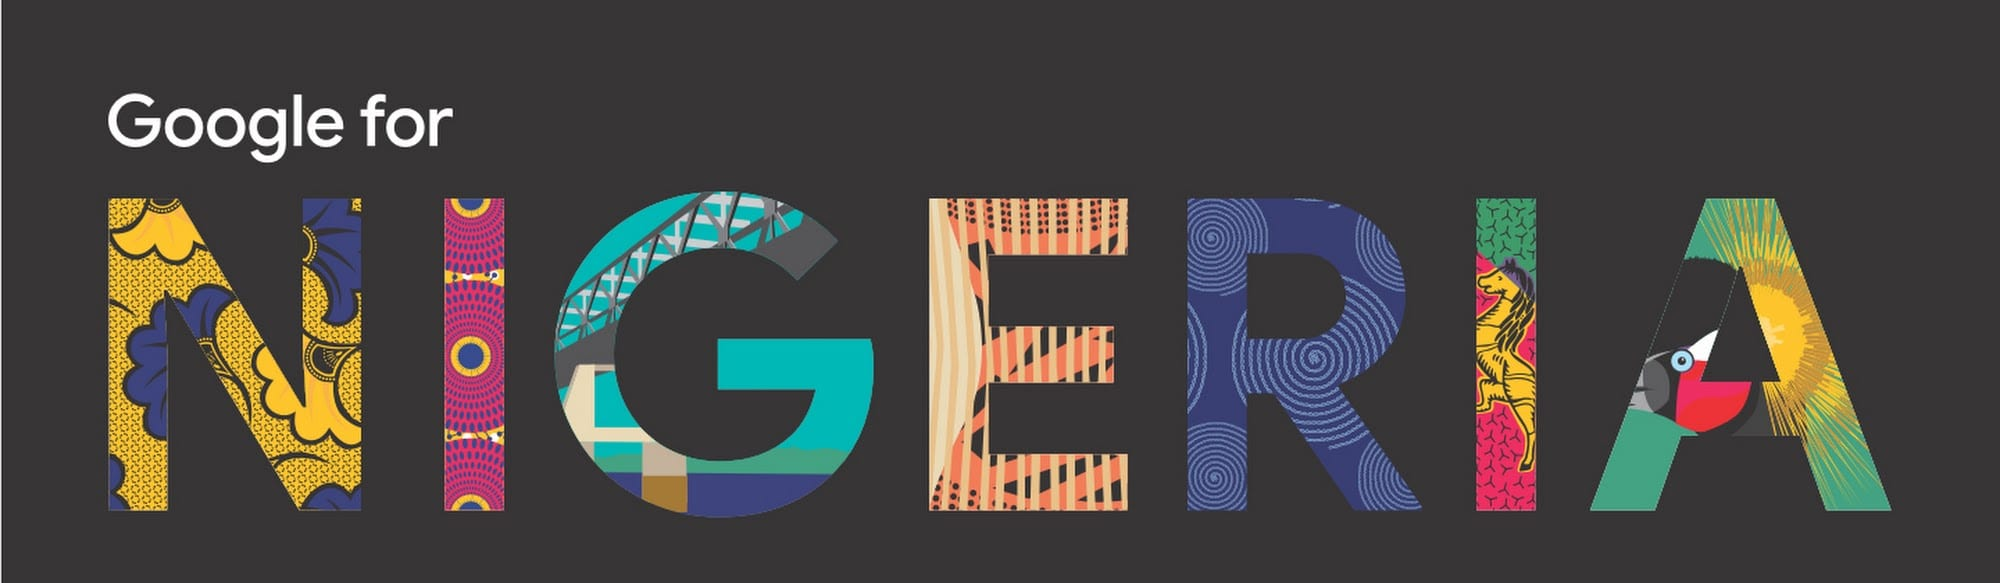 Register to attend the Google For Nigeria Event 2018 for Nigerian creators, innovators & business owners